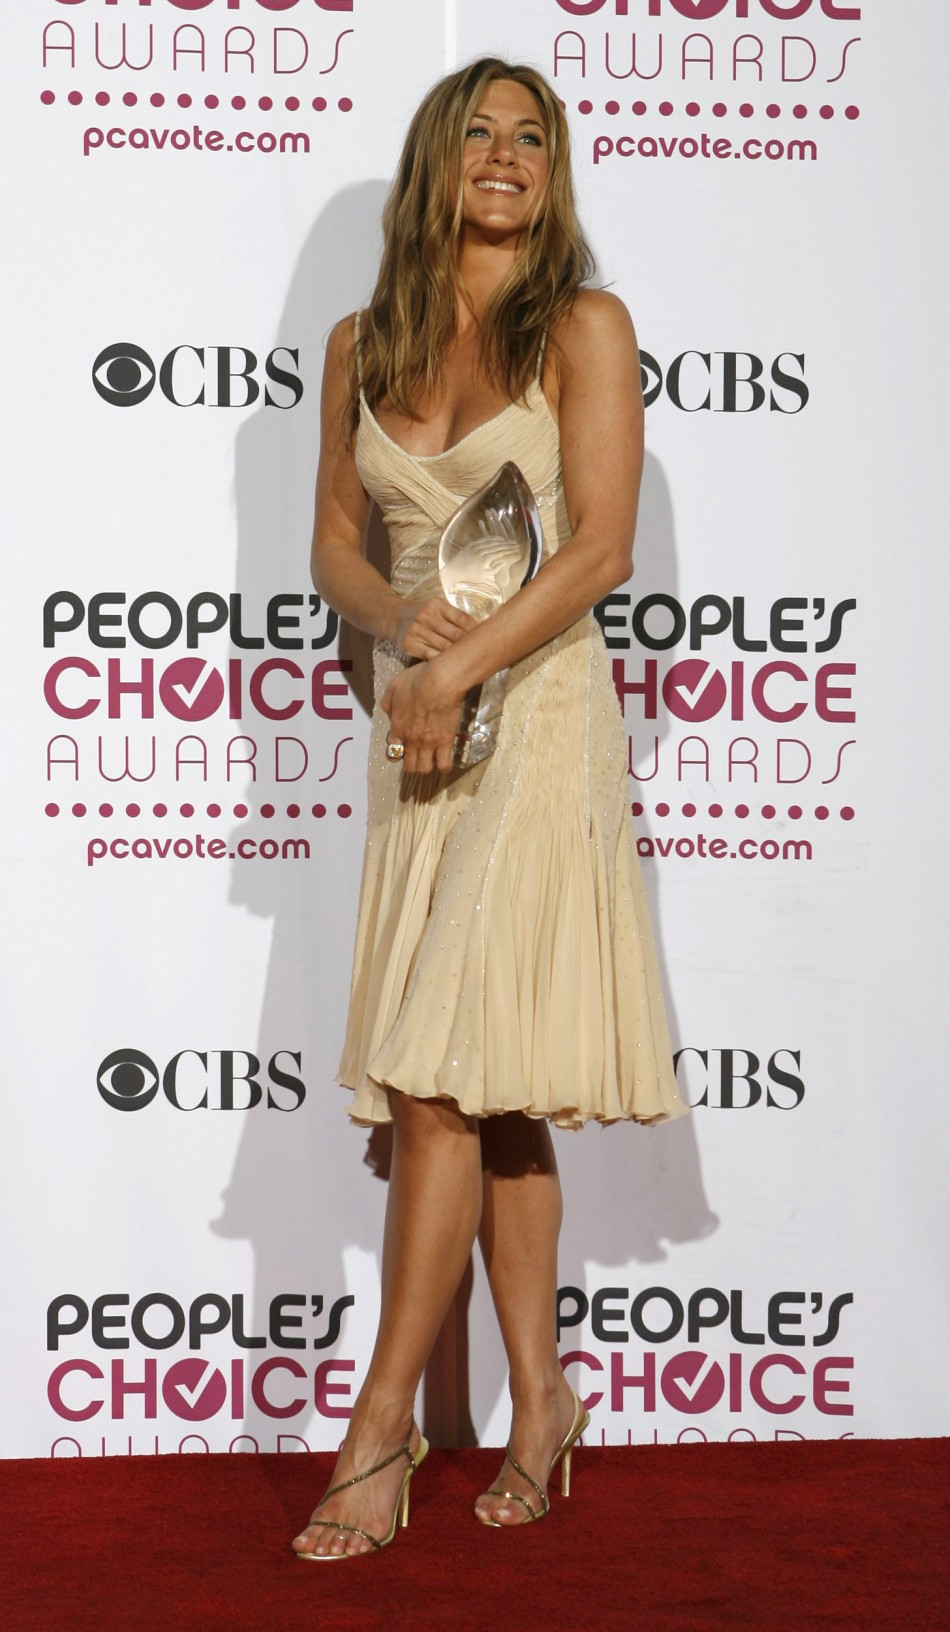 Jennifer Aniston holds her award backstage at the 33rd annual Peoples Choice Awards